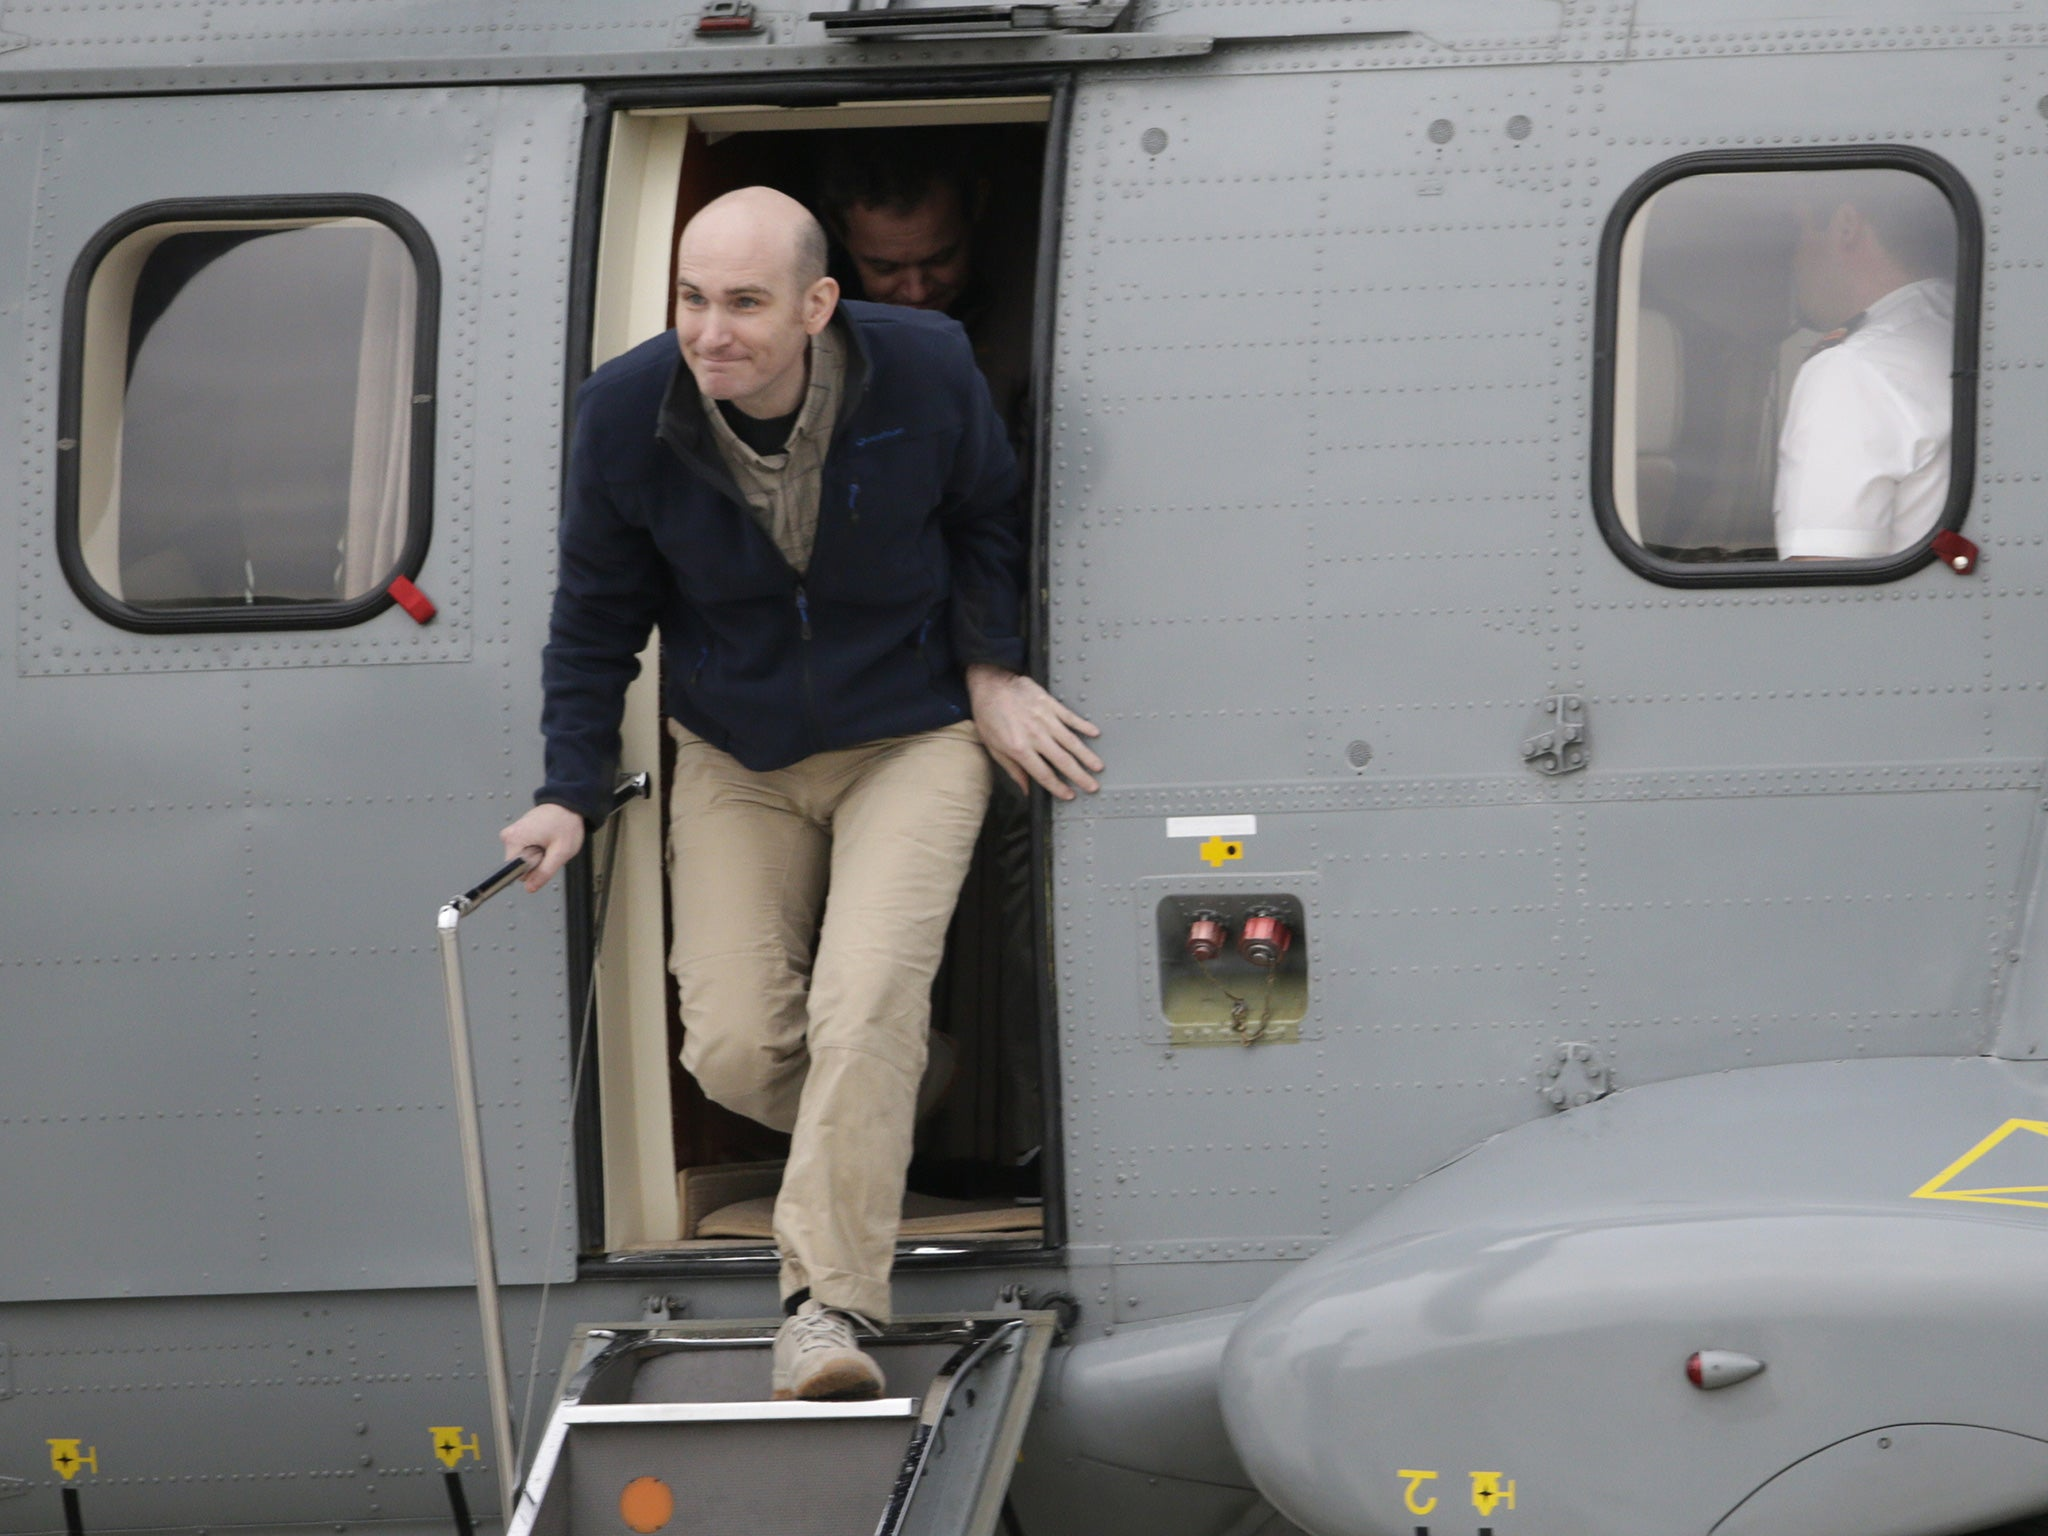 Nicolas Henin interview: The man who was held captive by Isis for 10 months describes how they can be defeated